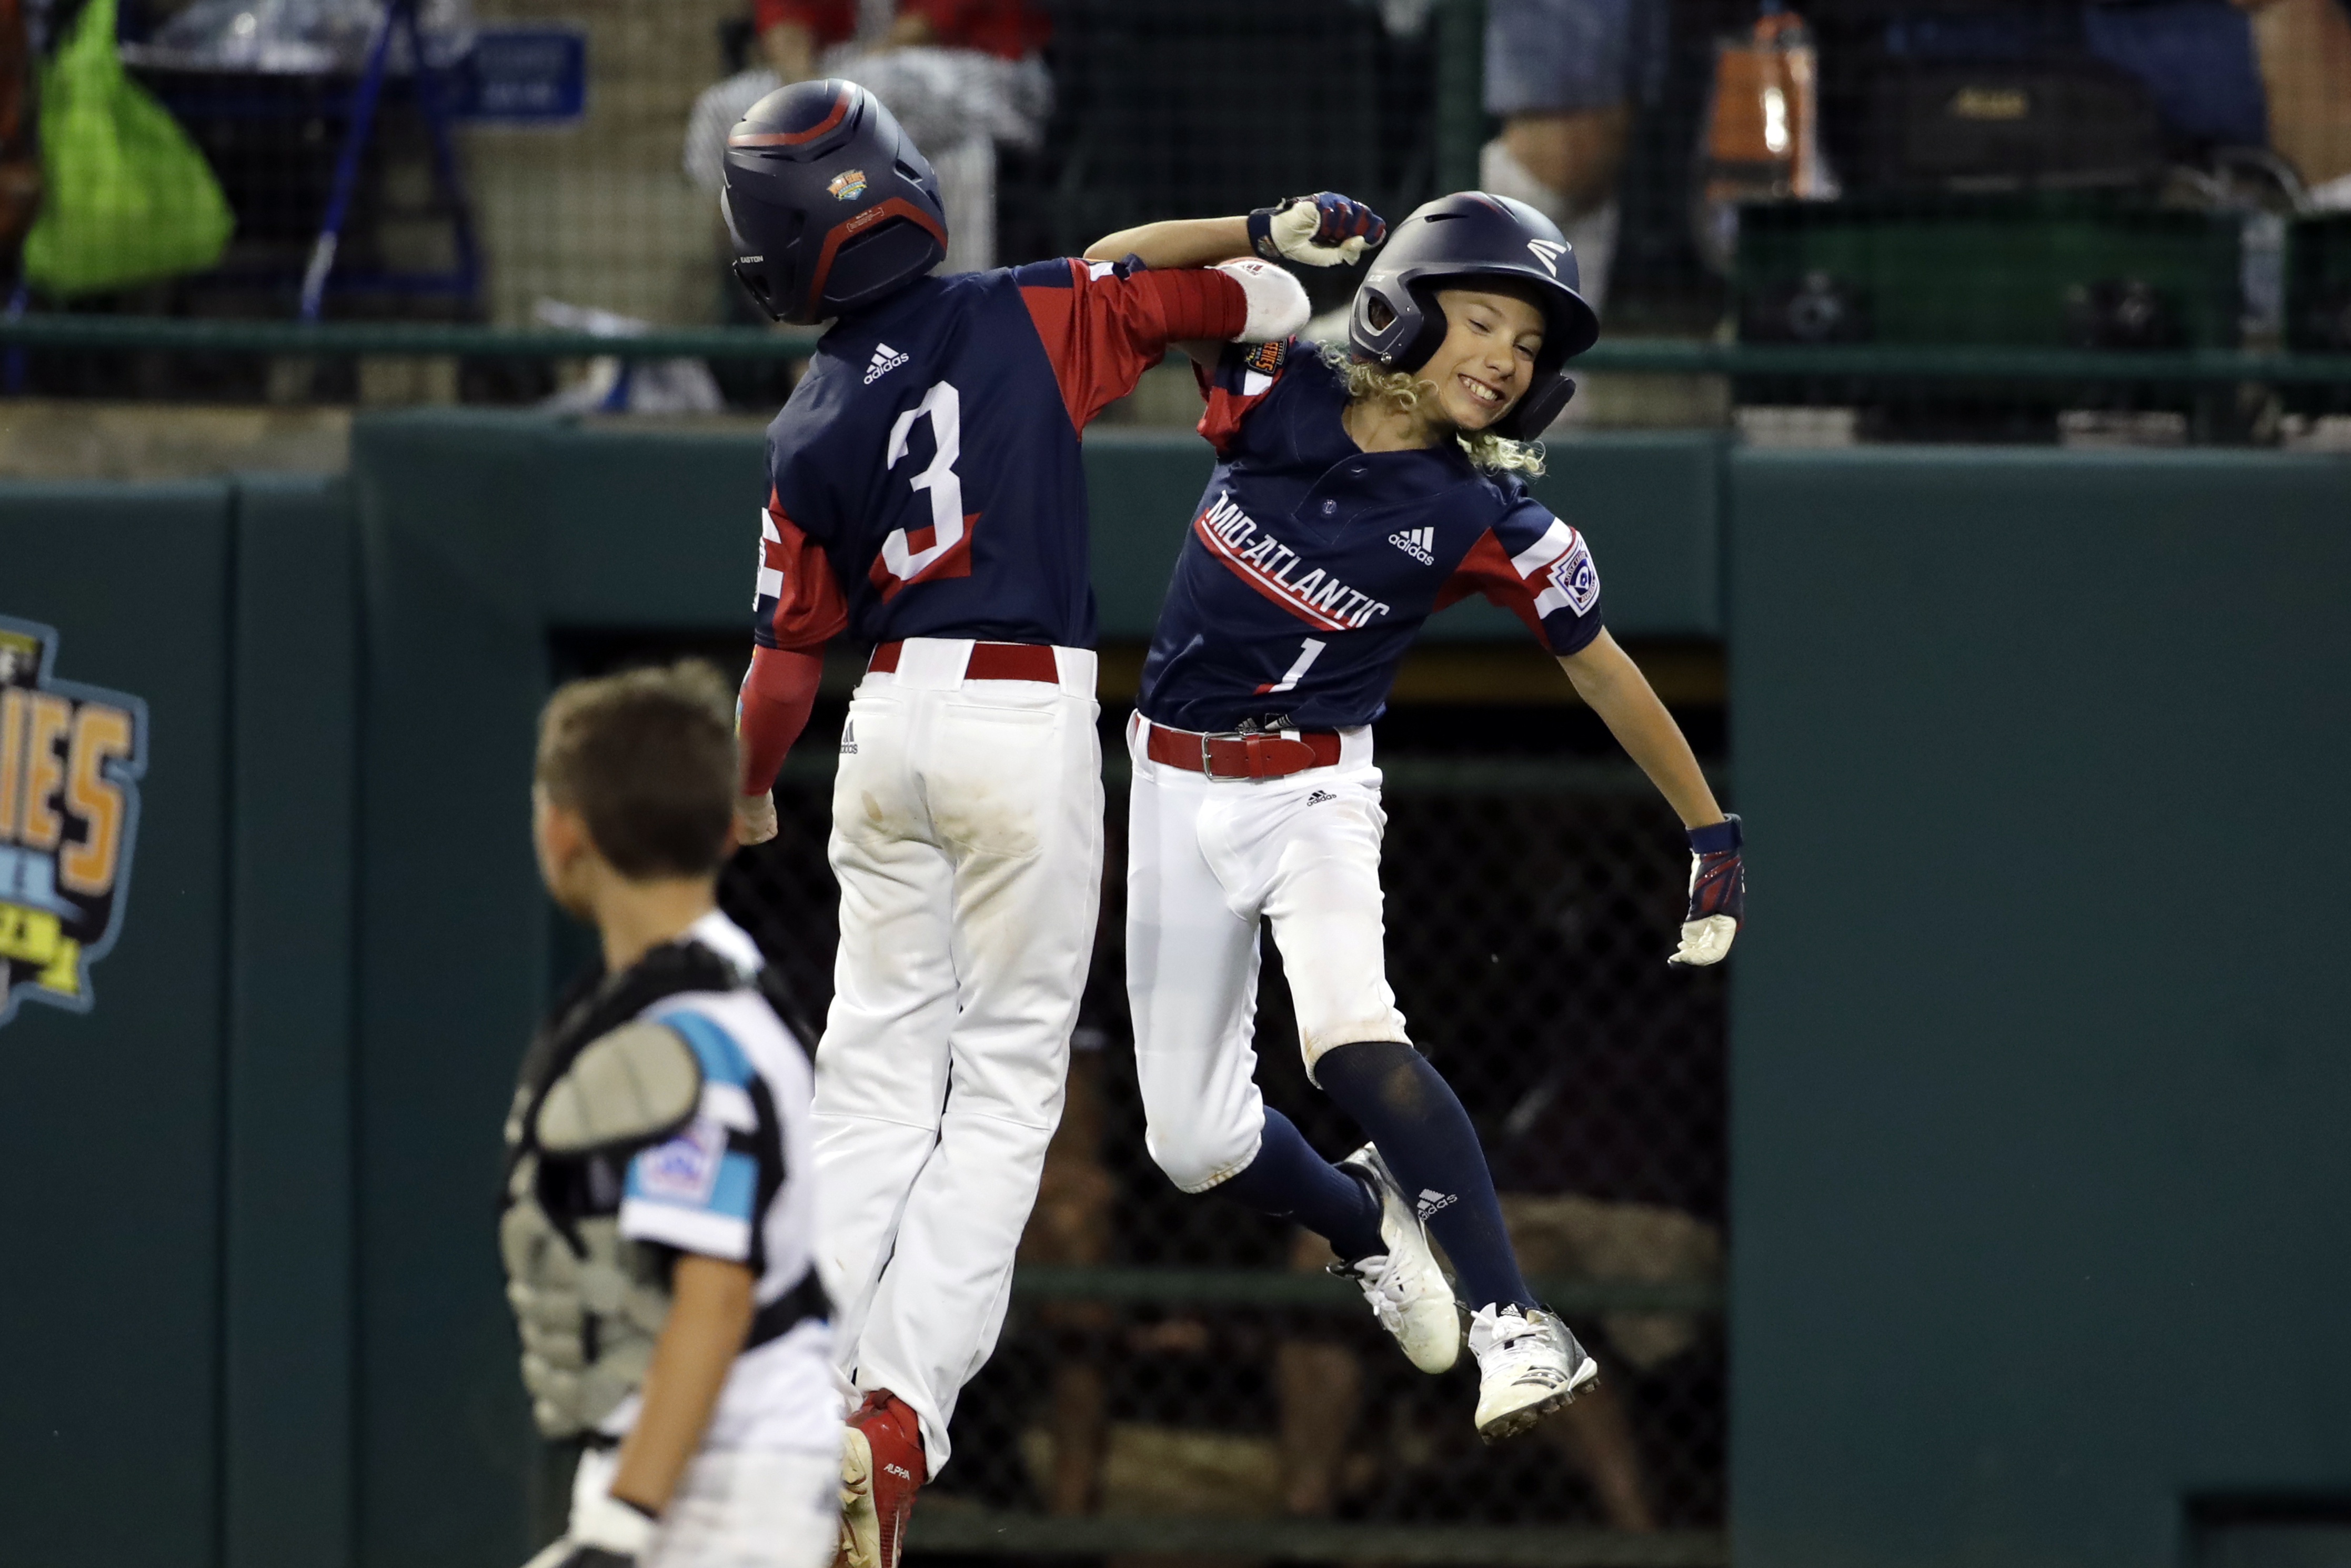 Little League World Series: New Jersey vs. Hawaii LIVE STREAM (8/18/19) How to watch online